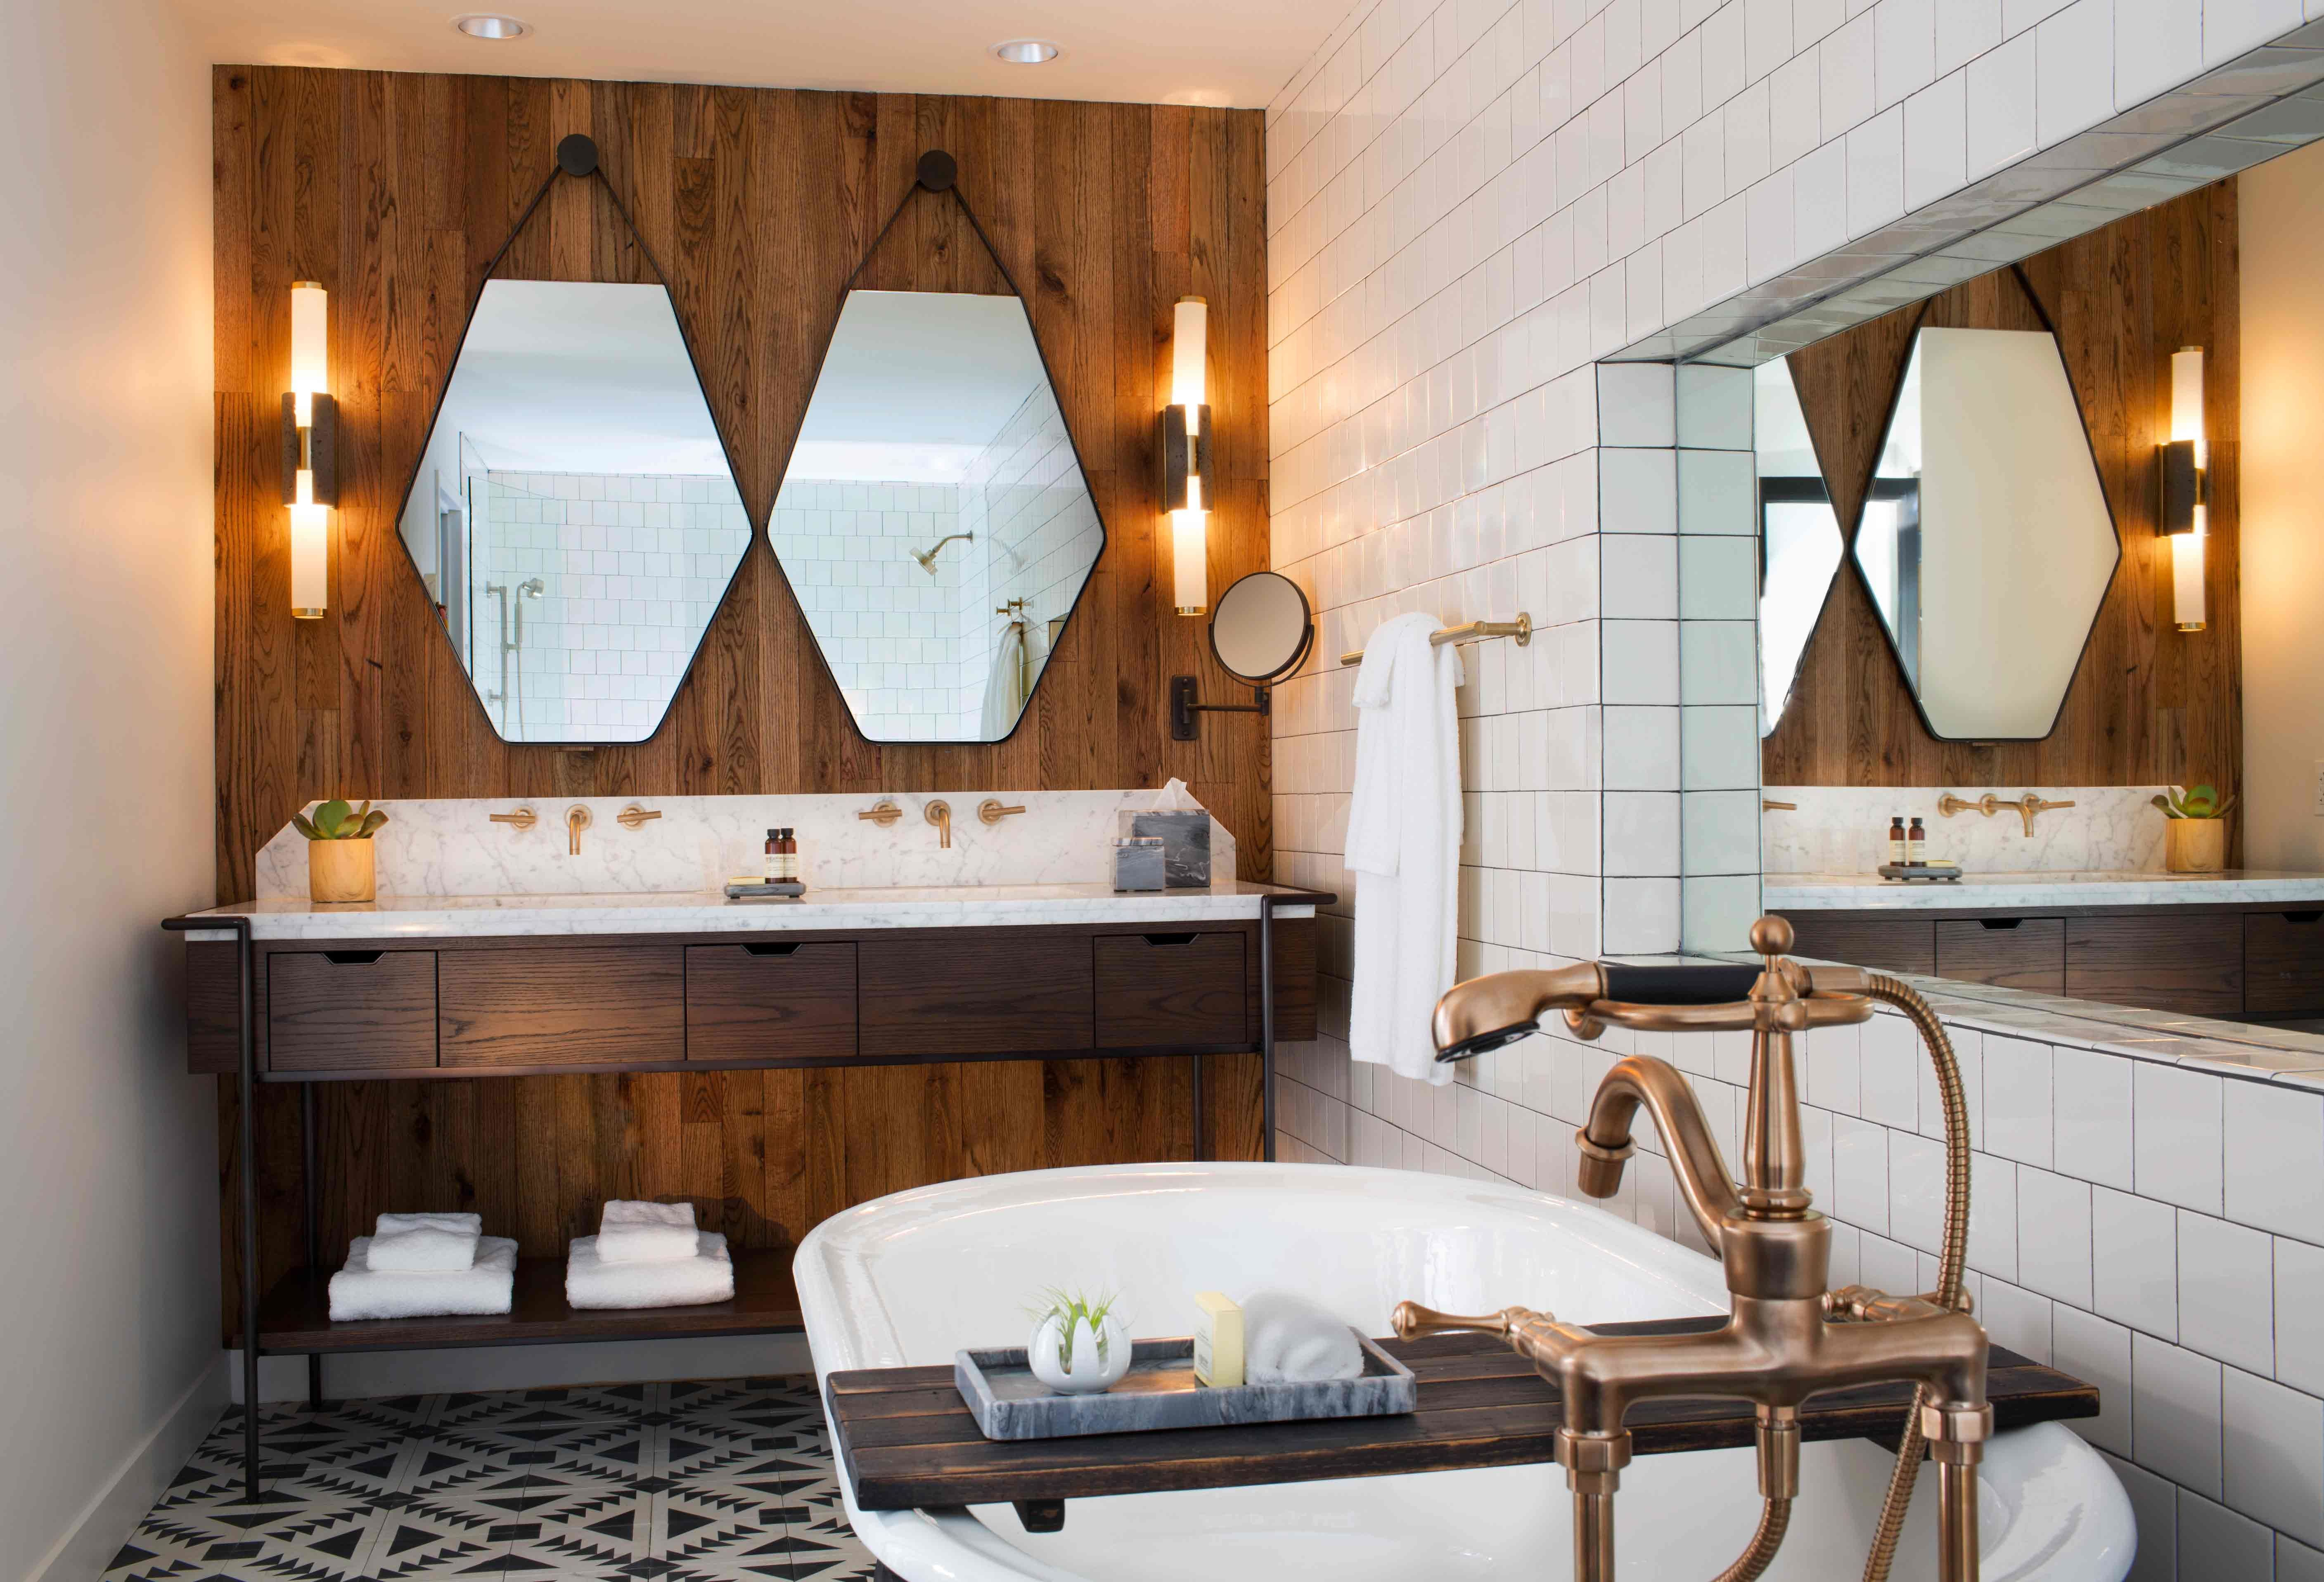 Charming bathroom in a boutique hotel.